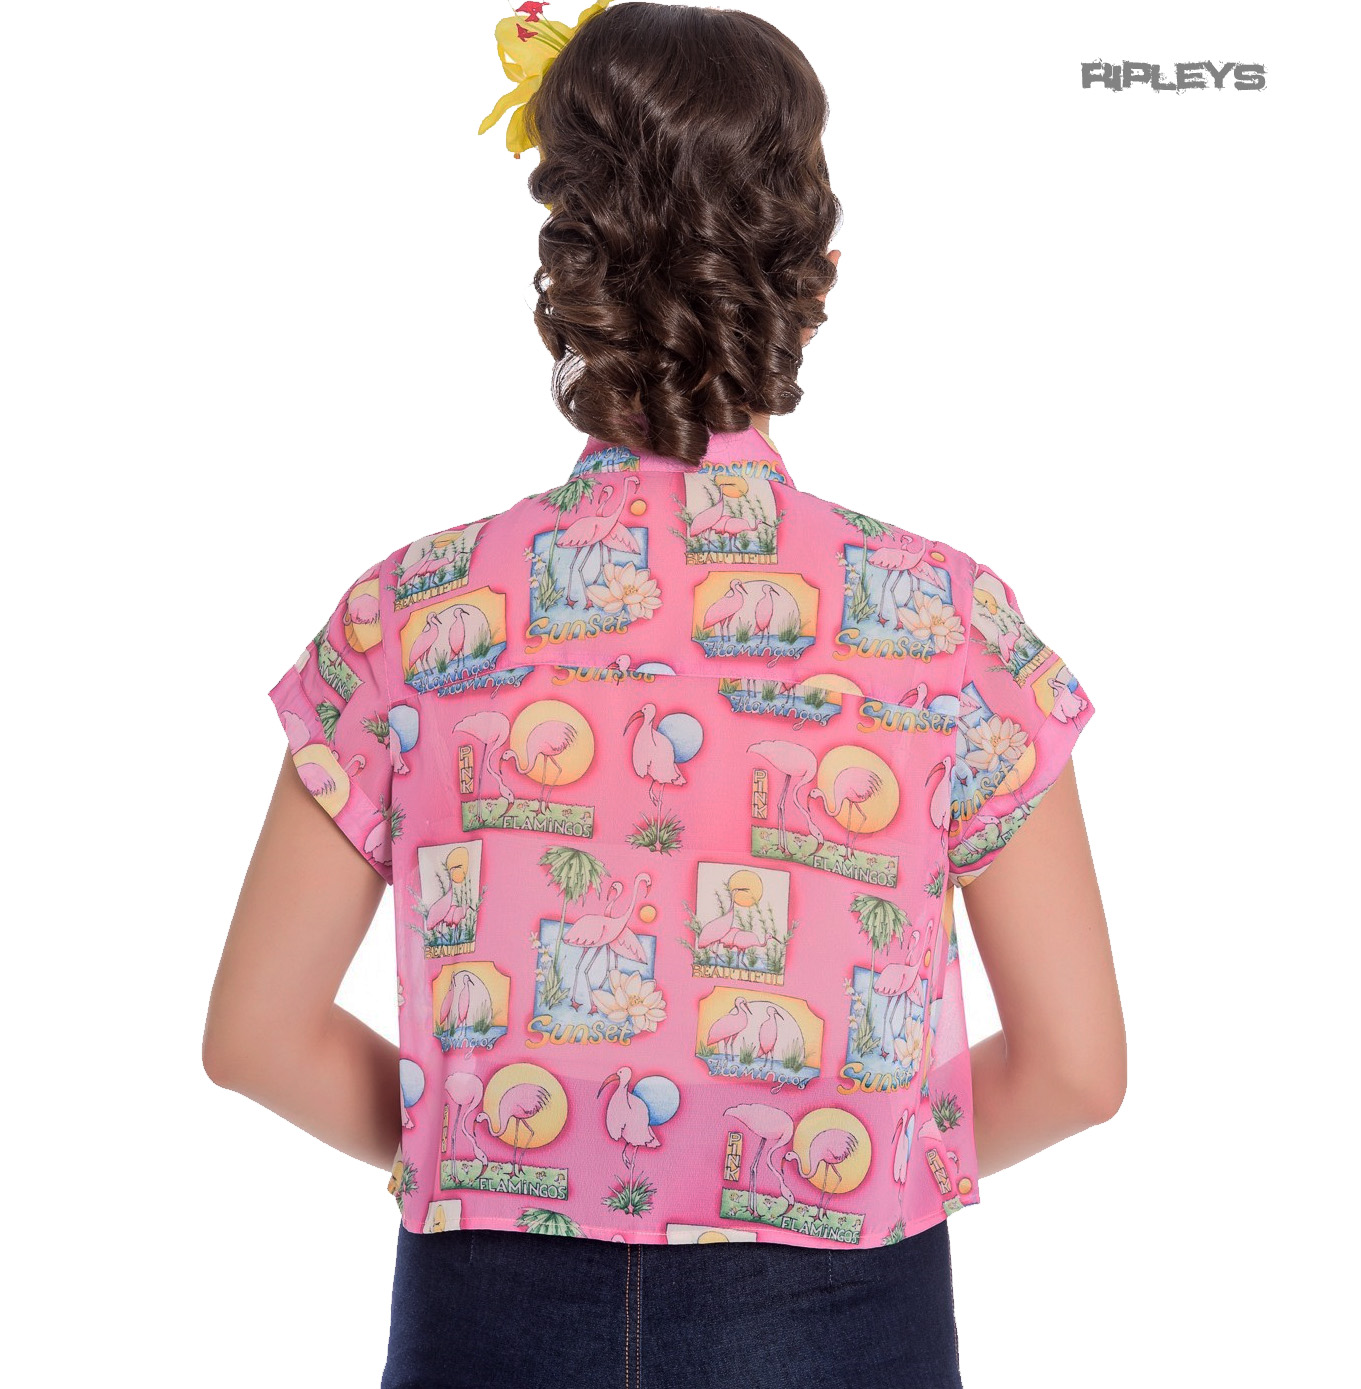 Hell-Bunny-50s-Retro-Top-Pink-Flamingo-MAXINE-Cropped-Blouse-Shirt-All-Sizes thumbnail 8